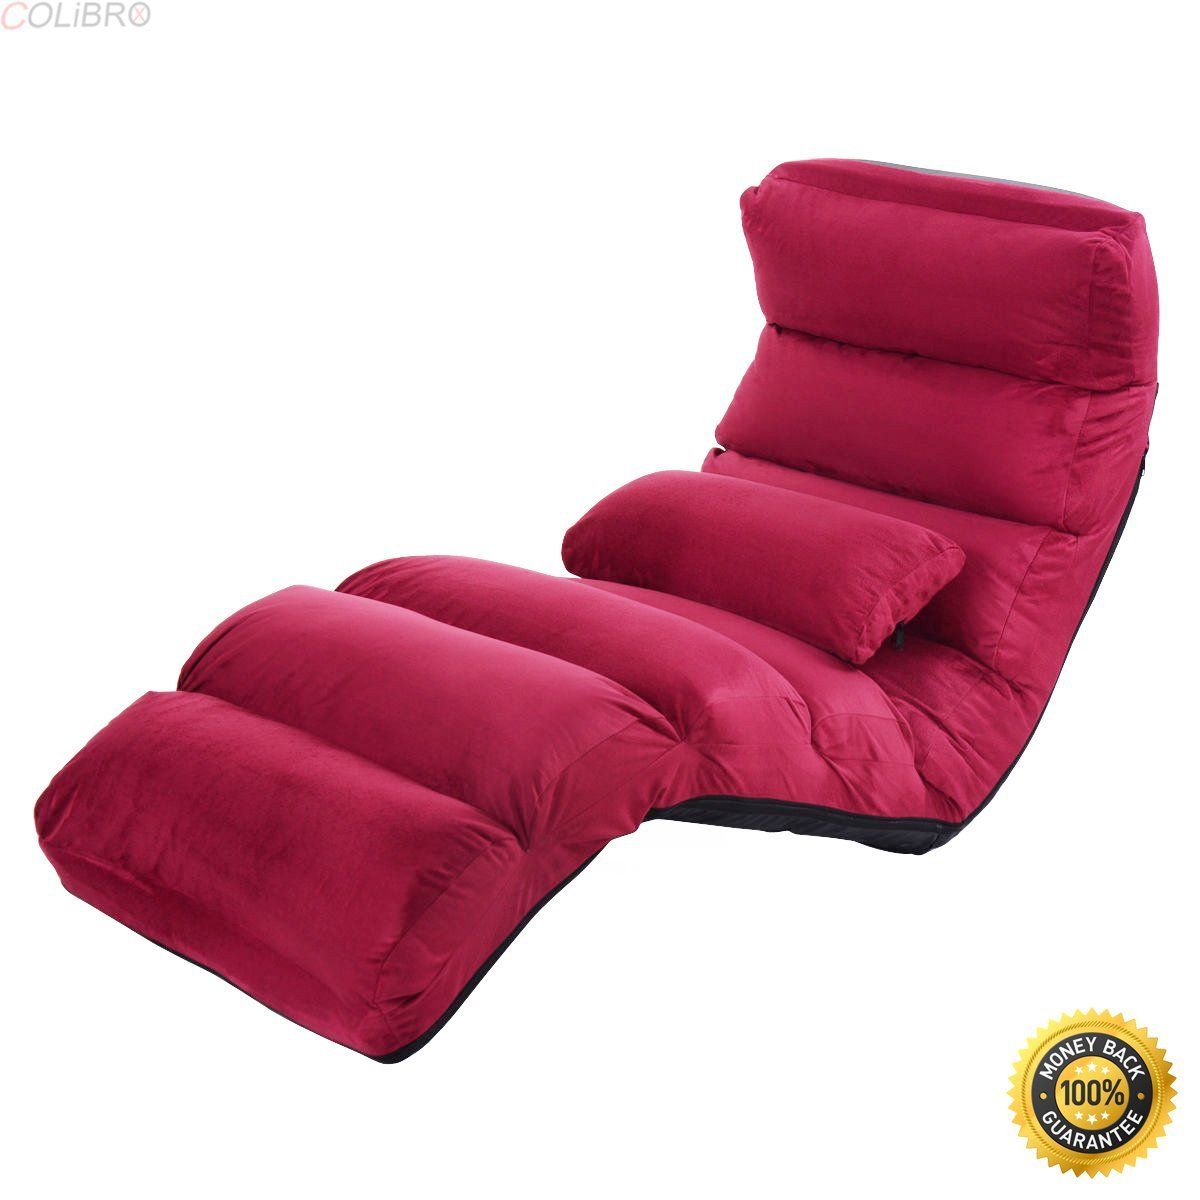 best floor chair who sells bean bag chairs buy giantex folding lazy sofa stylish couch beds lounge colibrox bed w pillow